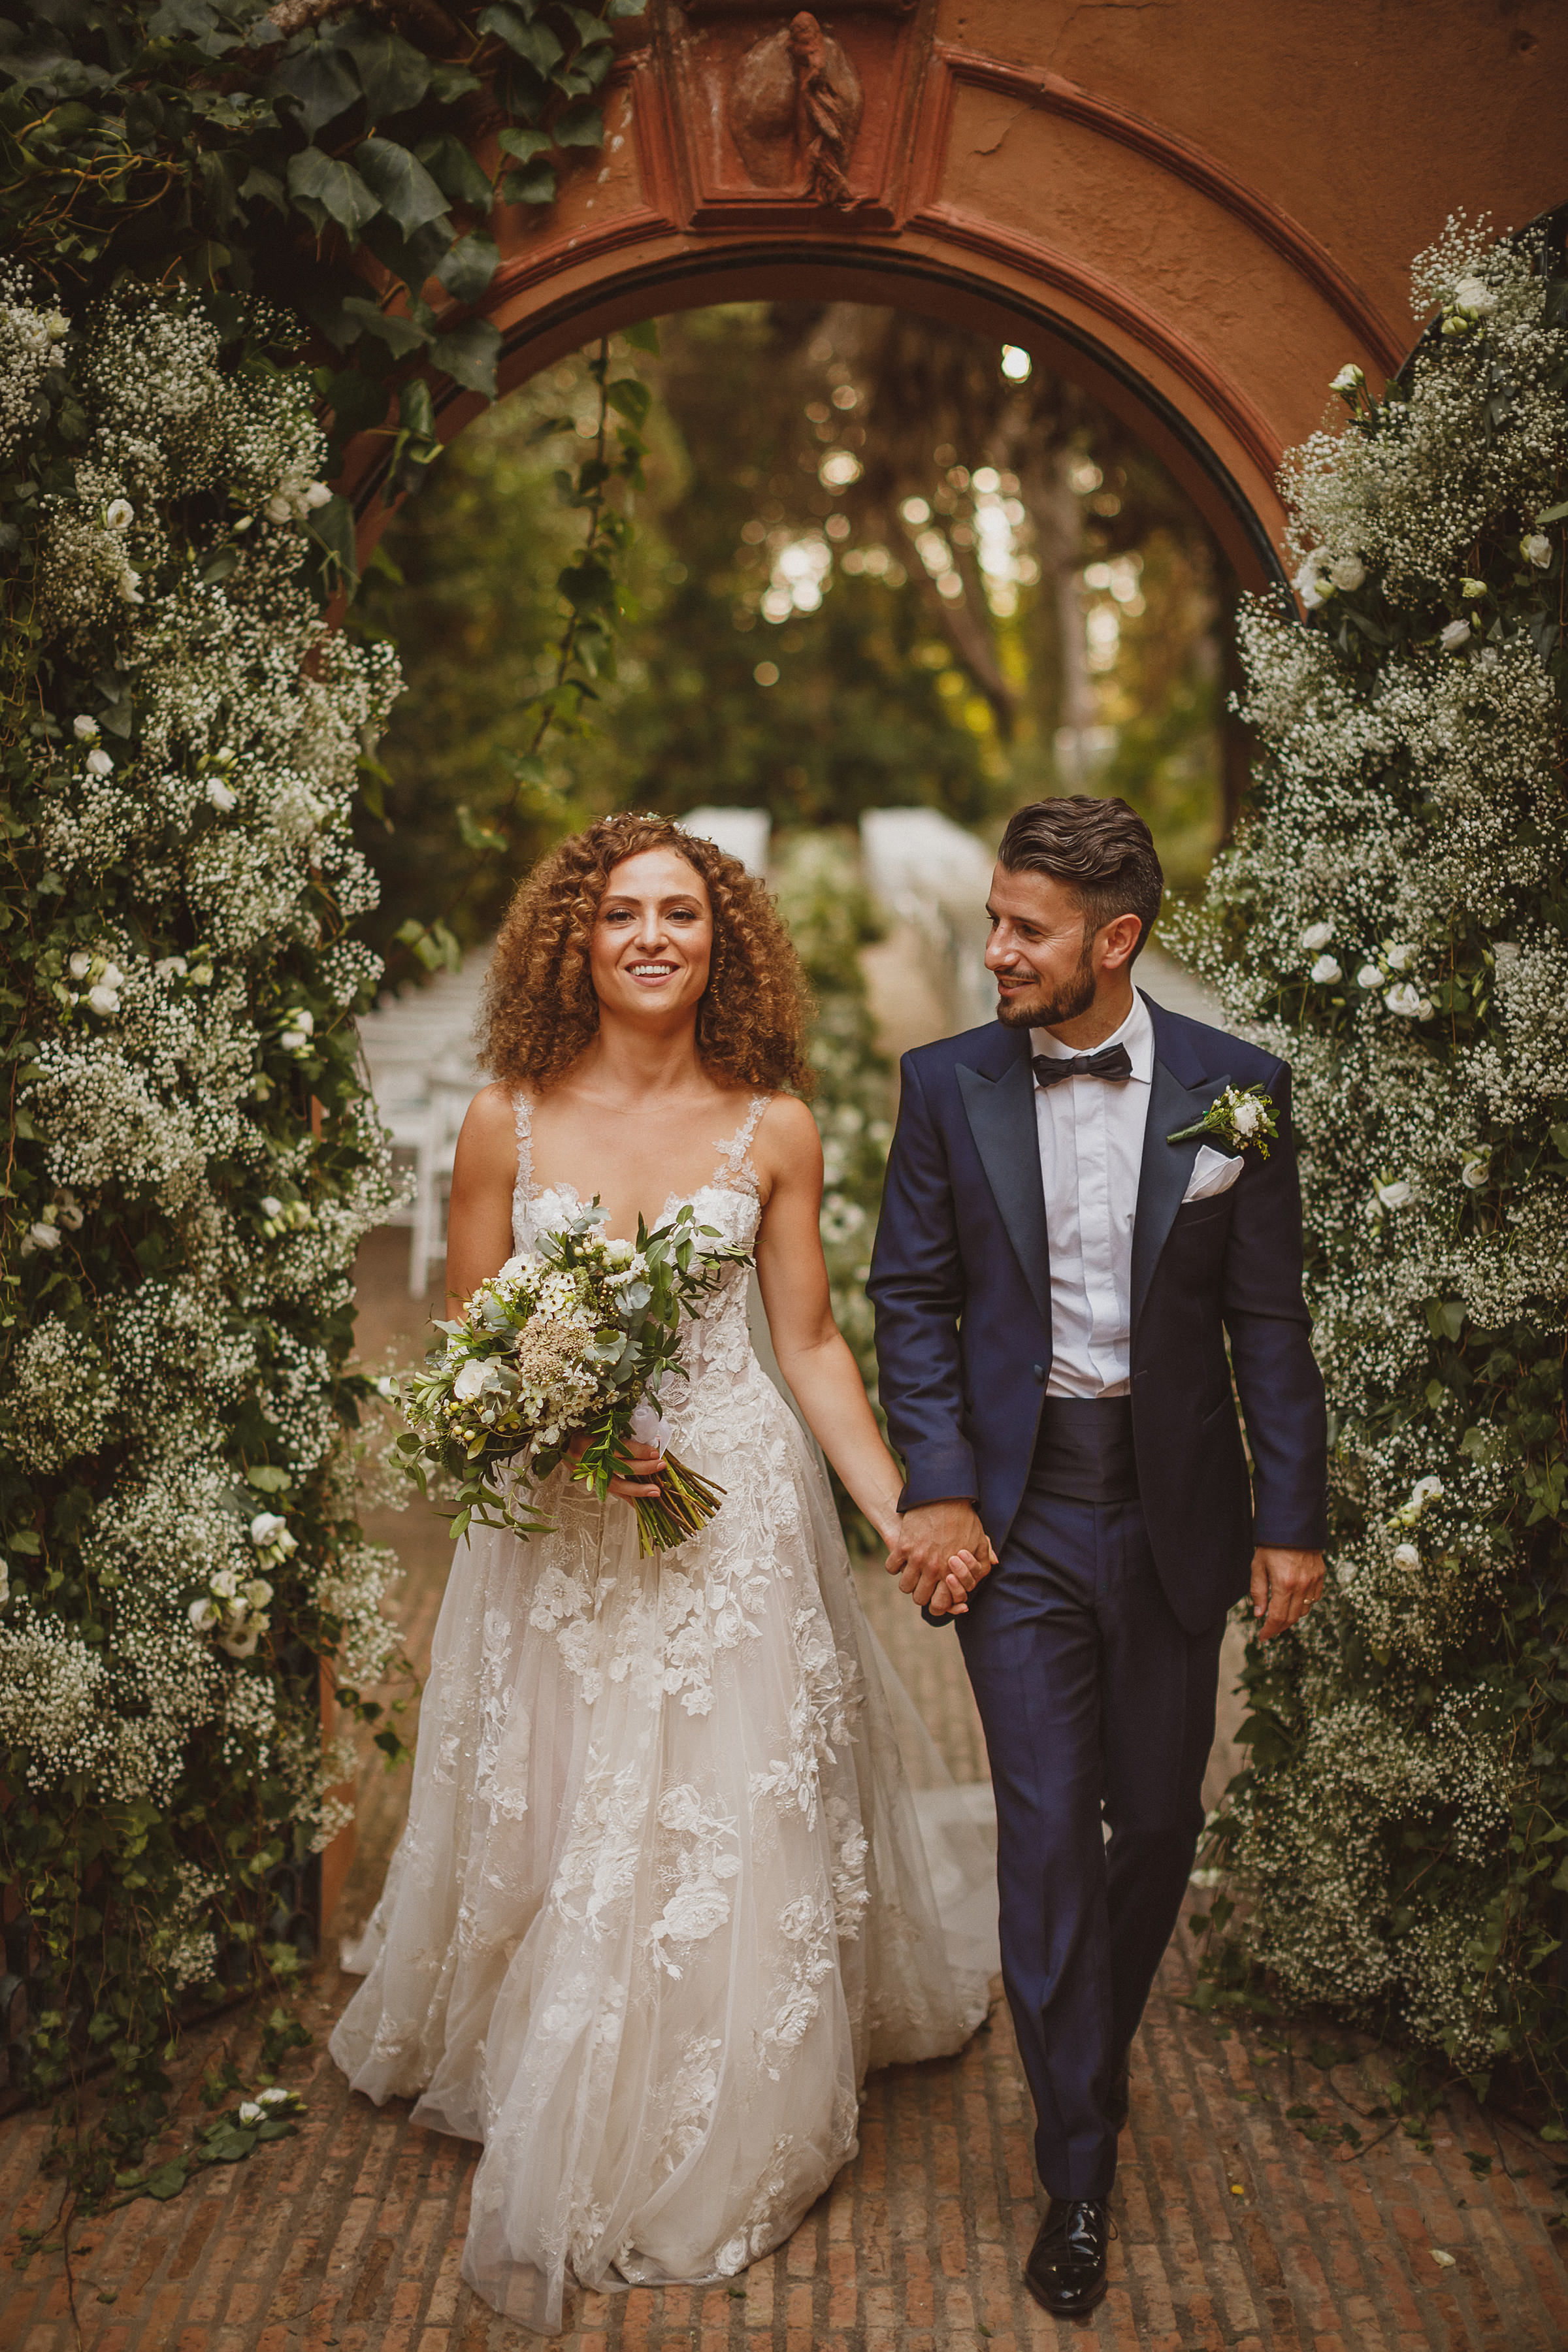 couple-walk-through-natural-floral-arbor-ed-peers-photography